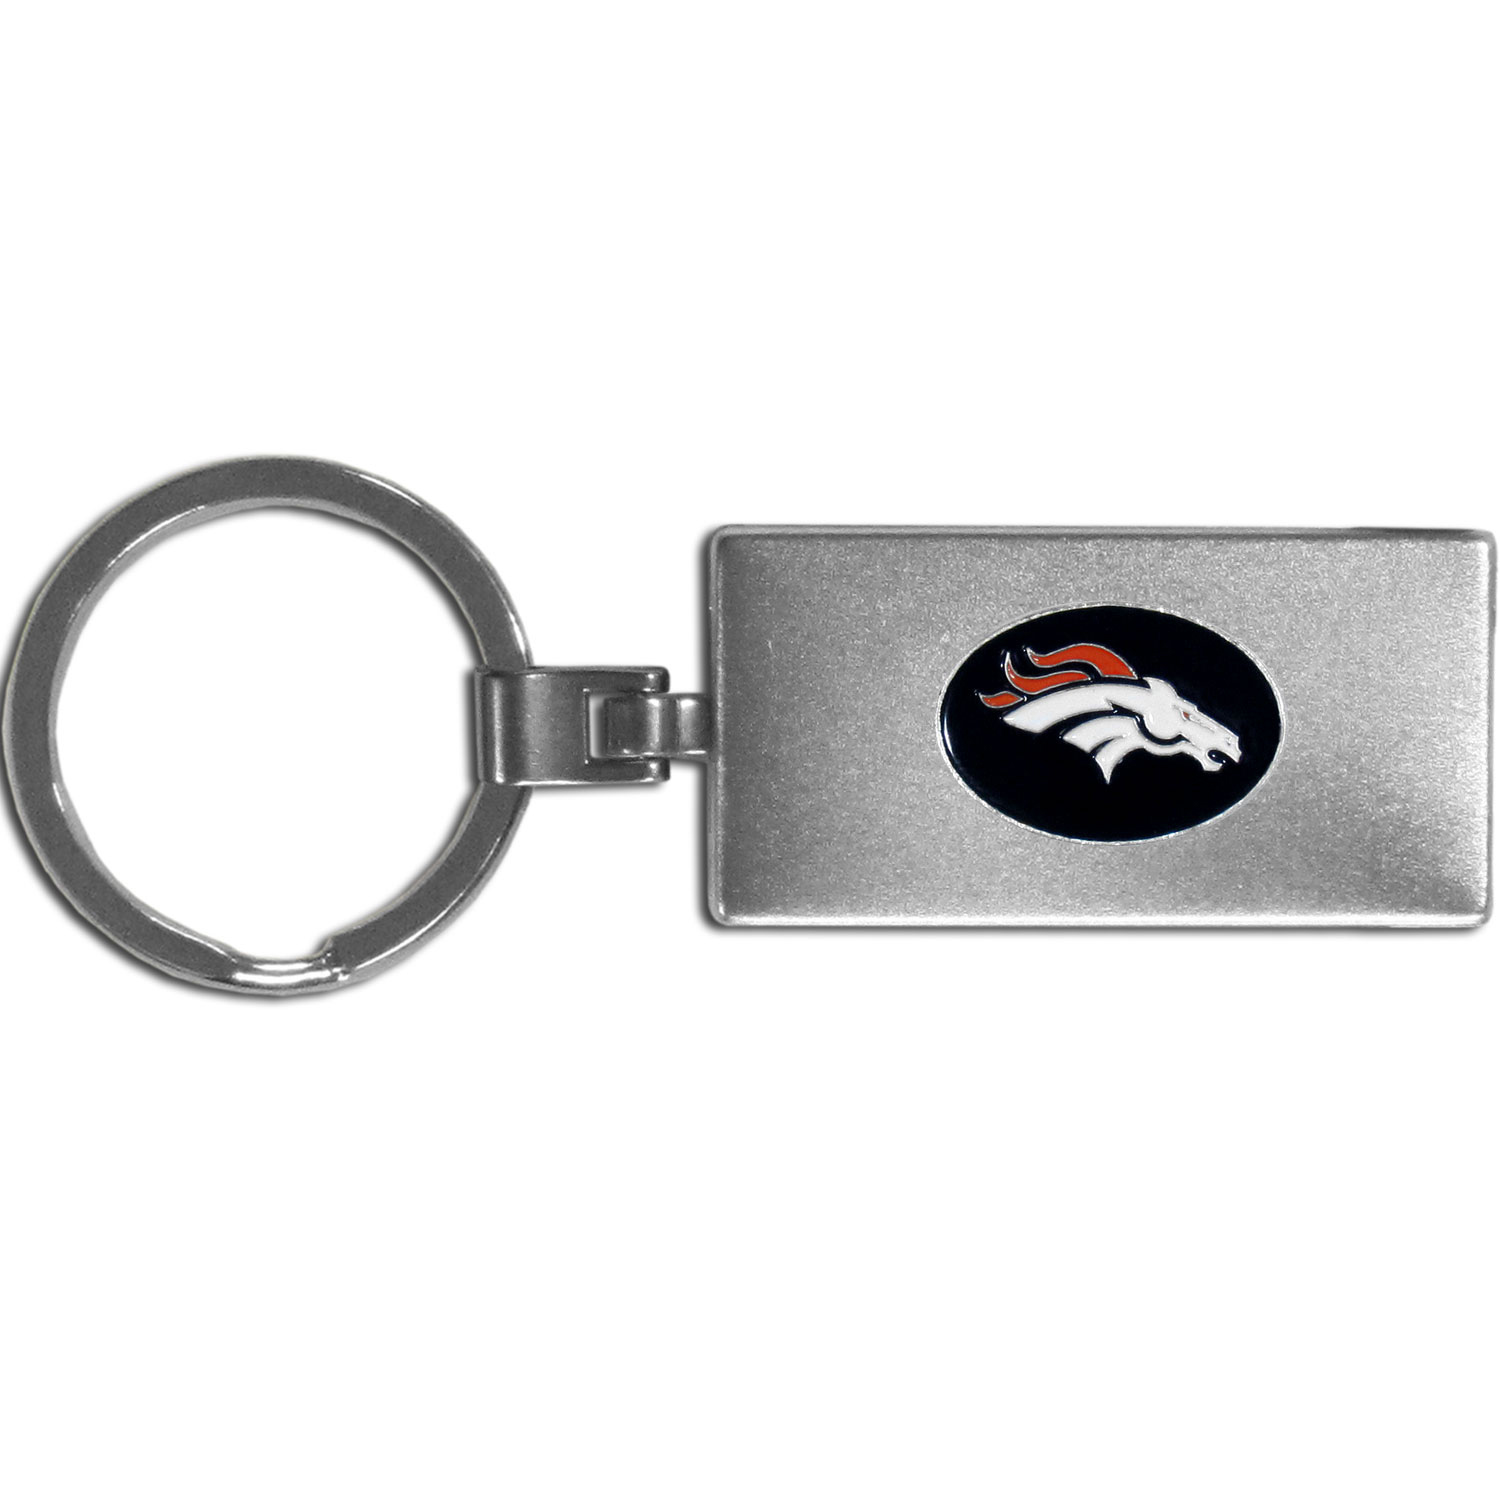 Denver Broncos Multi-tool Key Chain - Be the hero at the tailgate, camping, or on a Friday night with your Denver Broncos Multi-Tool Keychain which comes complete with bottle opener, scissors, knife, nail file and screw driver. Be it opening a package or a beverage Siskiyou's Multi-Tool Keychain goes wherever your keys do. The keychain hangs at 4 inches long when closed.